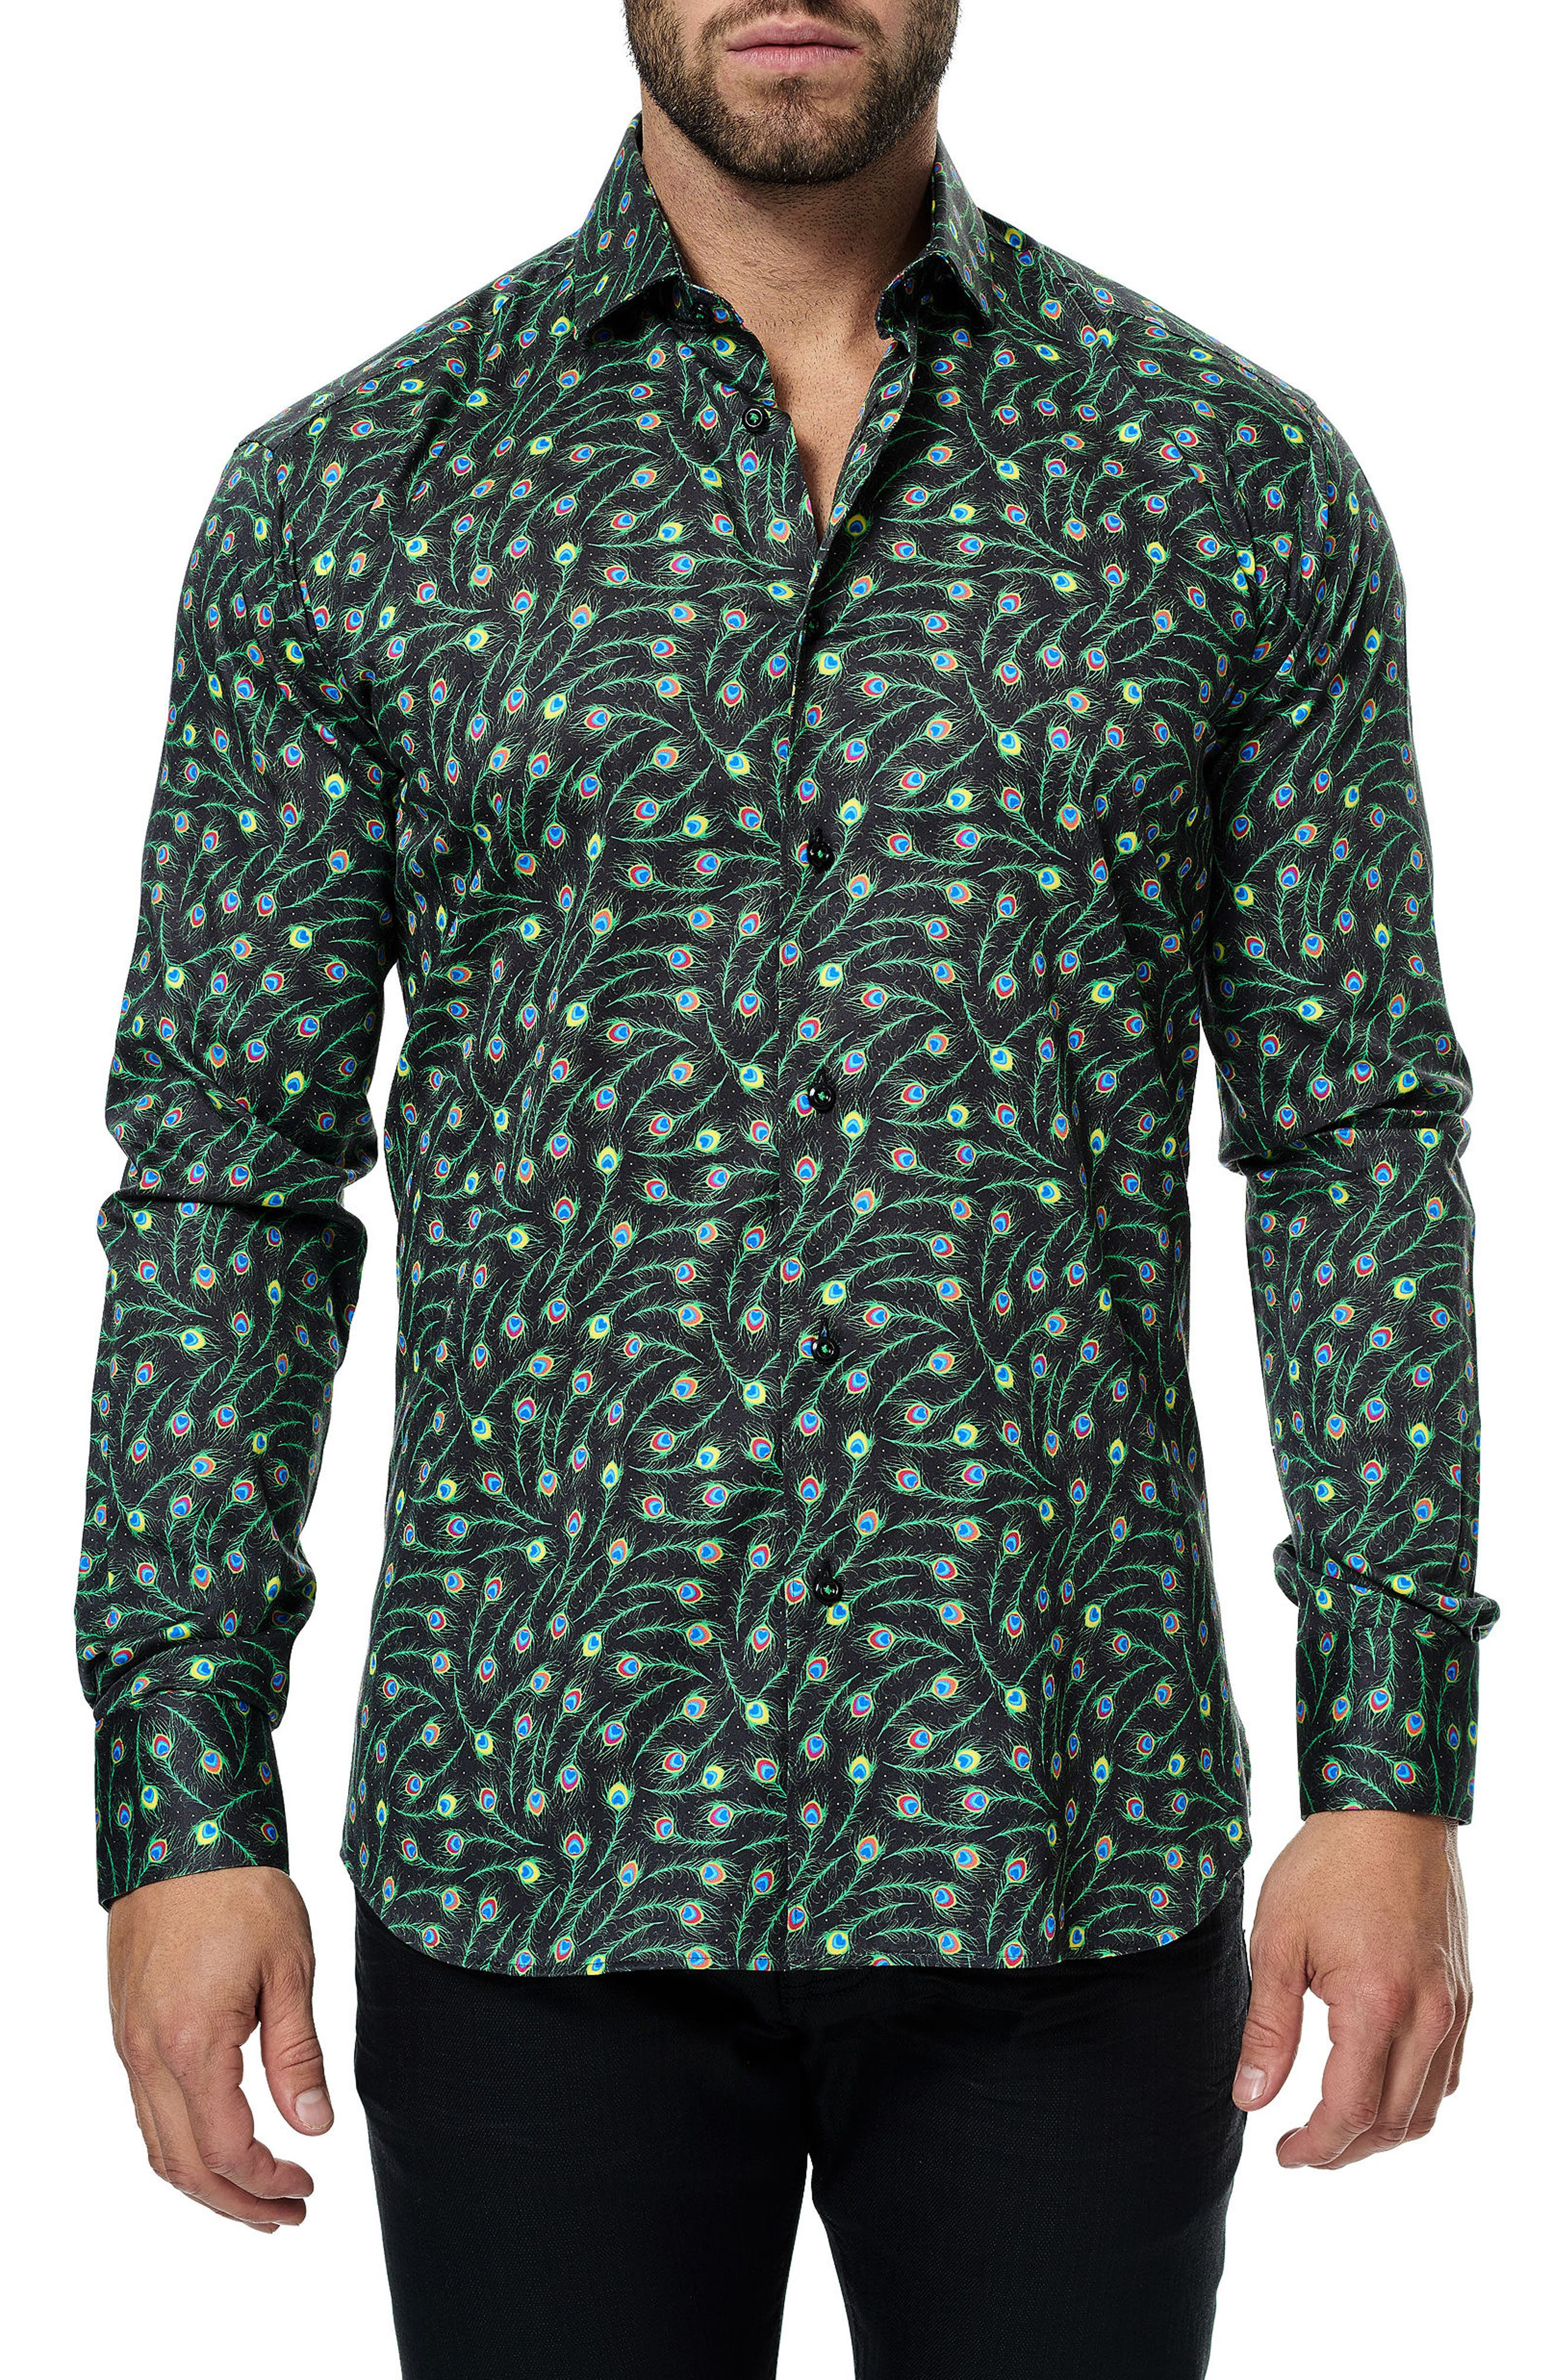 Maceoo Classic Feather Print Sport Shirt